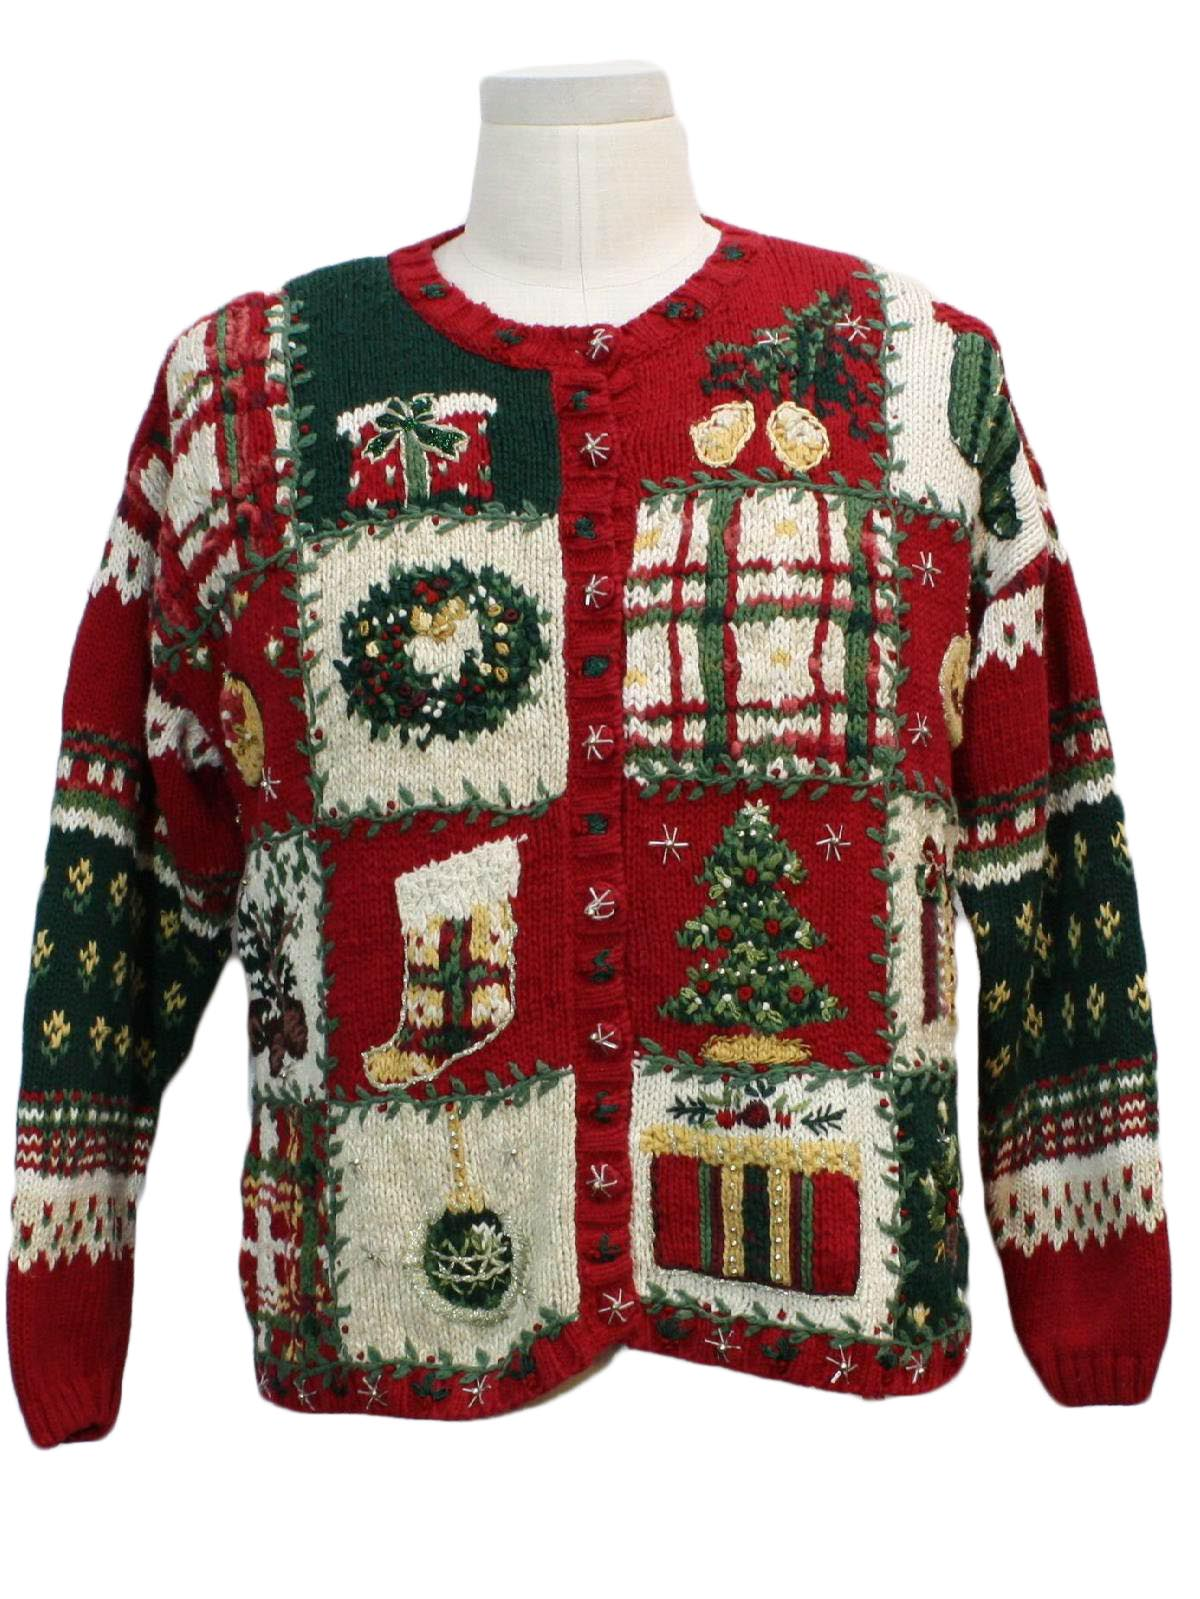 Womens Country Kitsch Ugly Christmas Sweater 80s Style Tiara